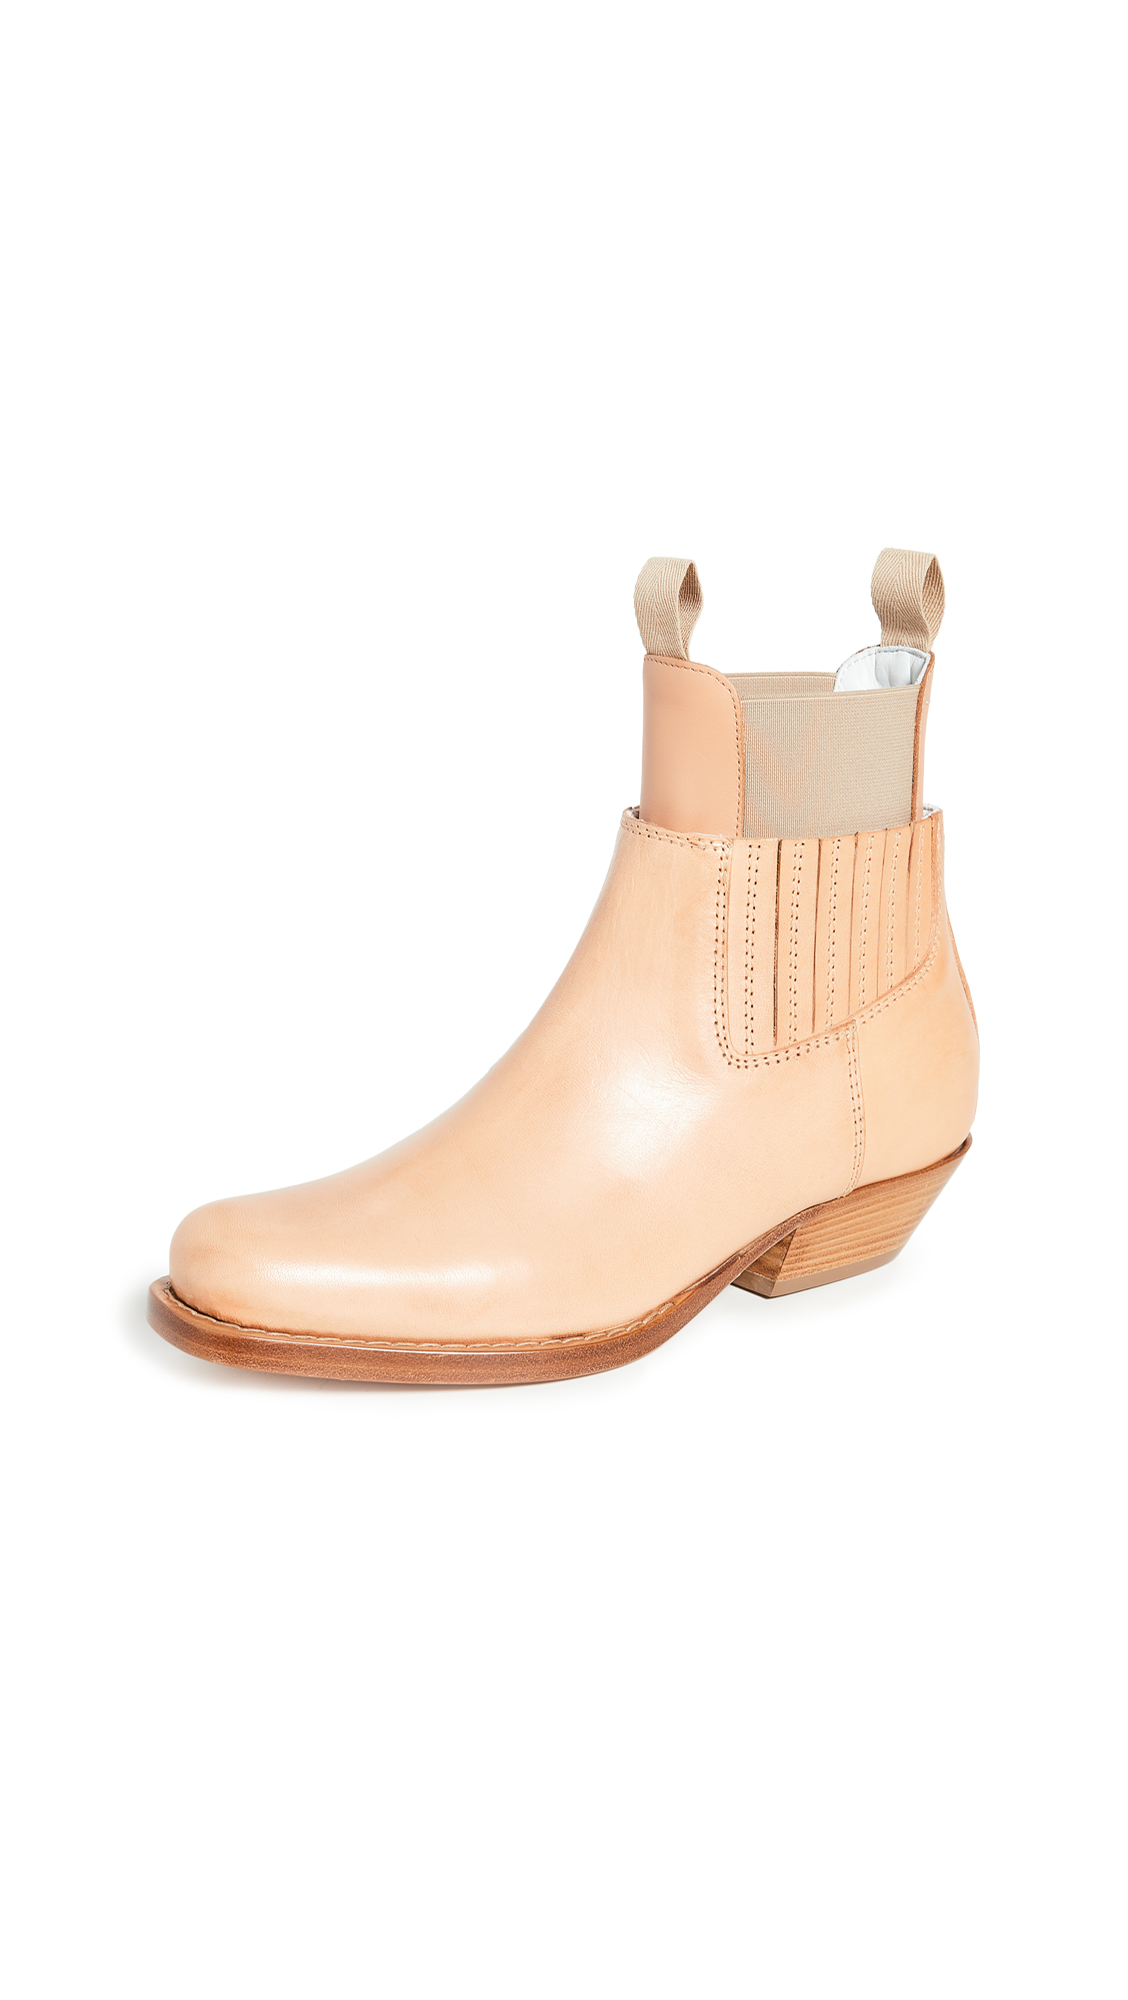 Buy MM6 Maison Margiela Layered Booties online, shop MM6 Maison Margiela